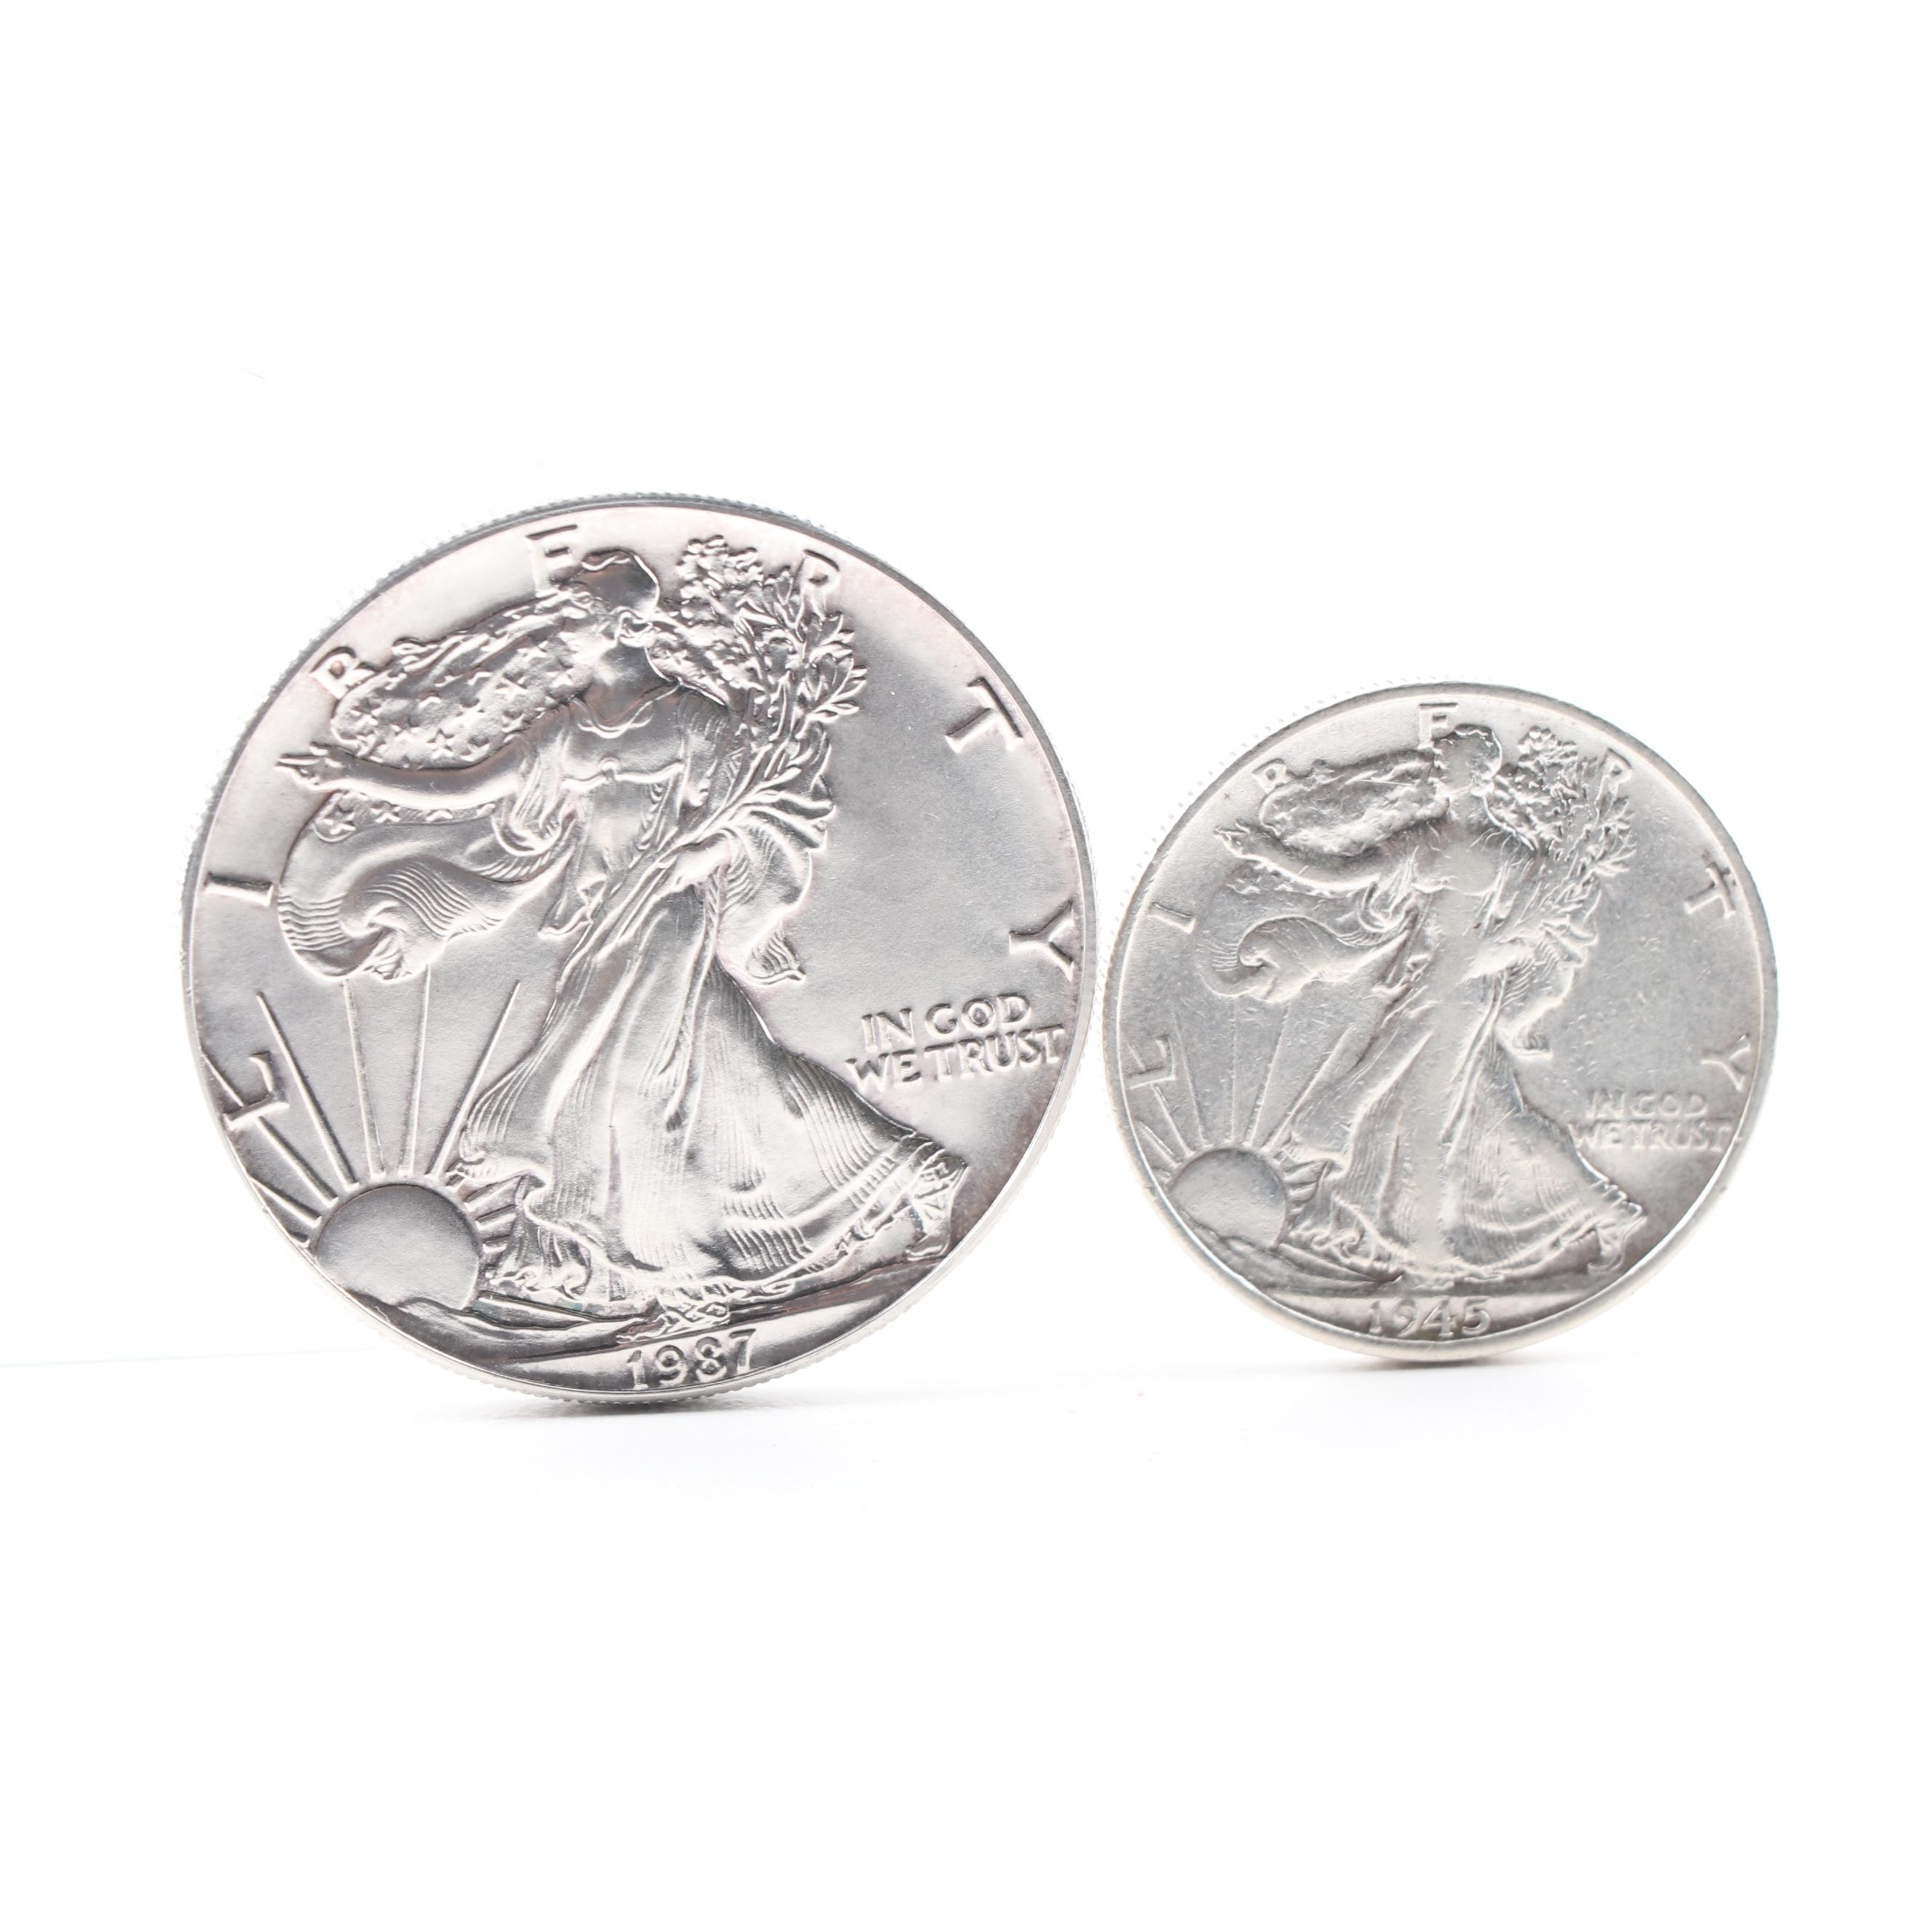 1987 American Silver Eagle Dollar and 1945-S Walking Liberty Silver Half Dollar